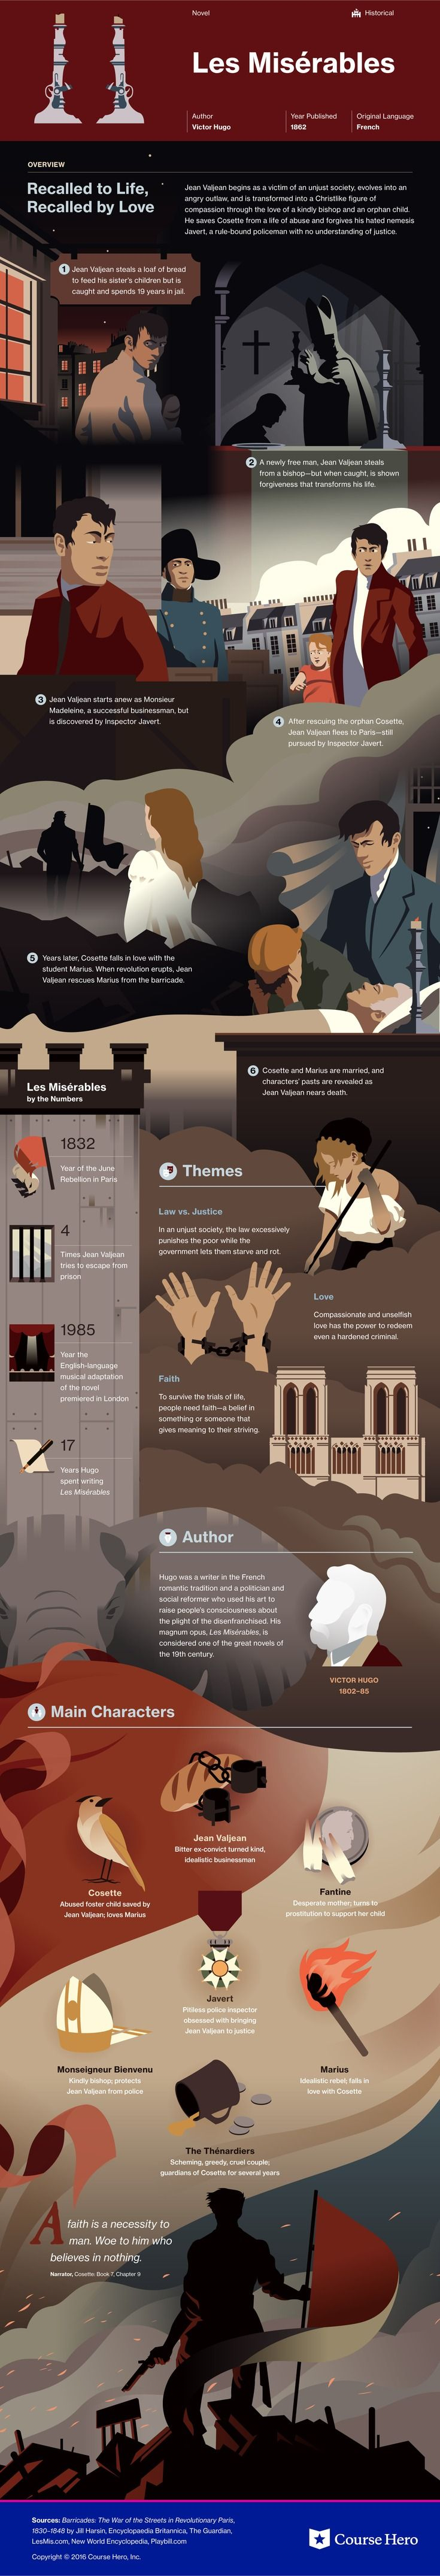 Les Misérables Infographic. Great exercise for practicing story-writing and summarizing.